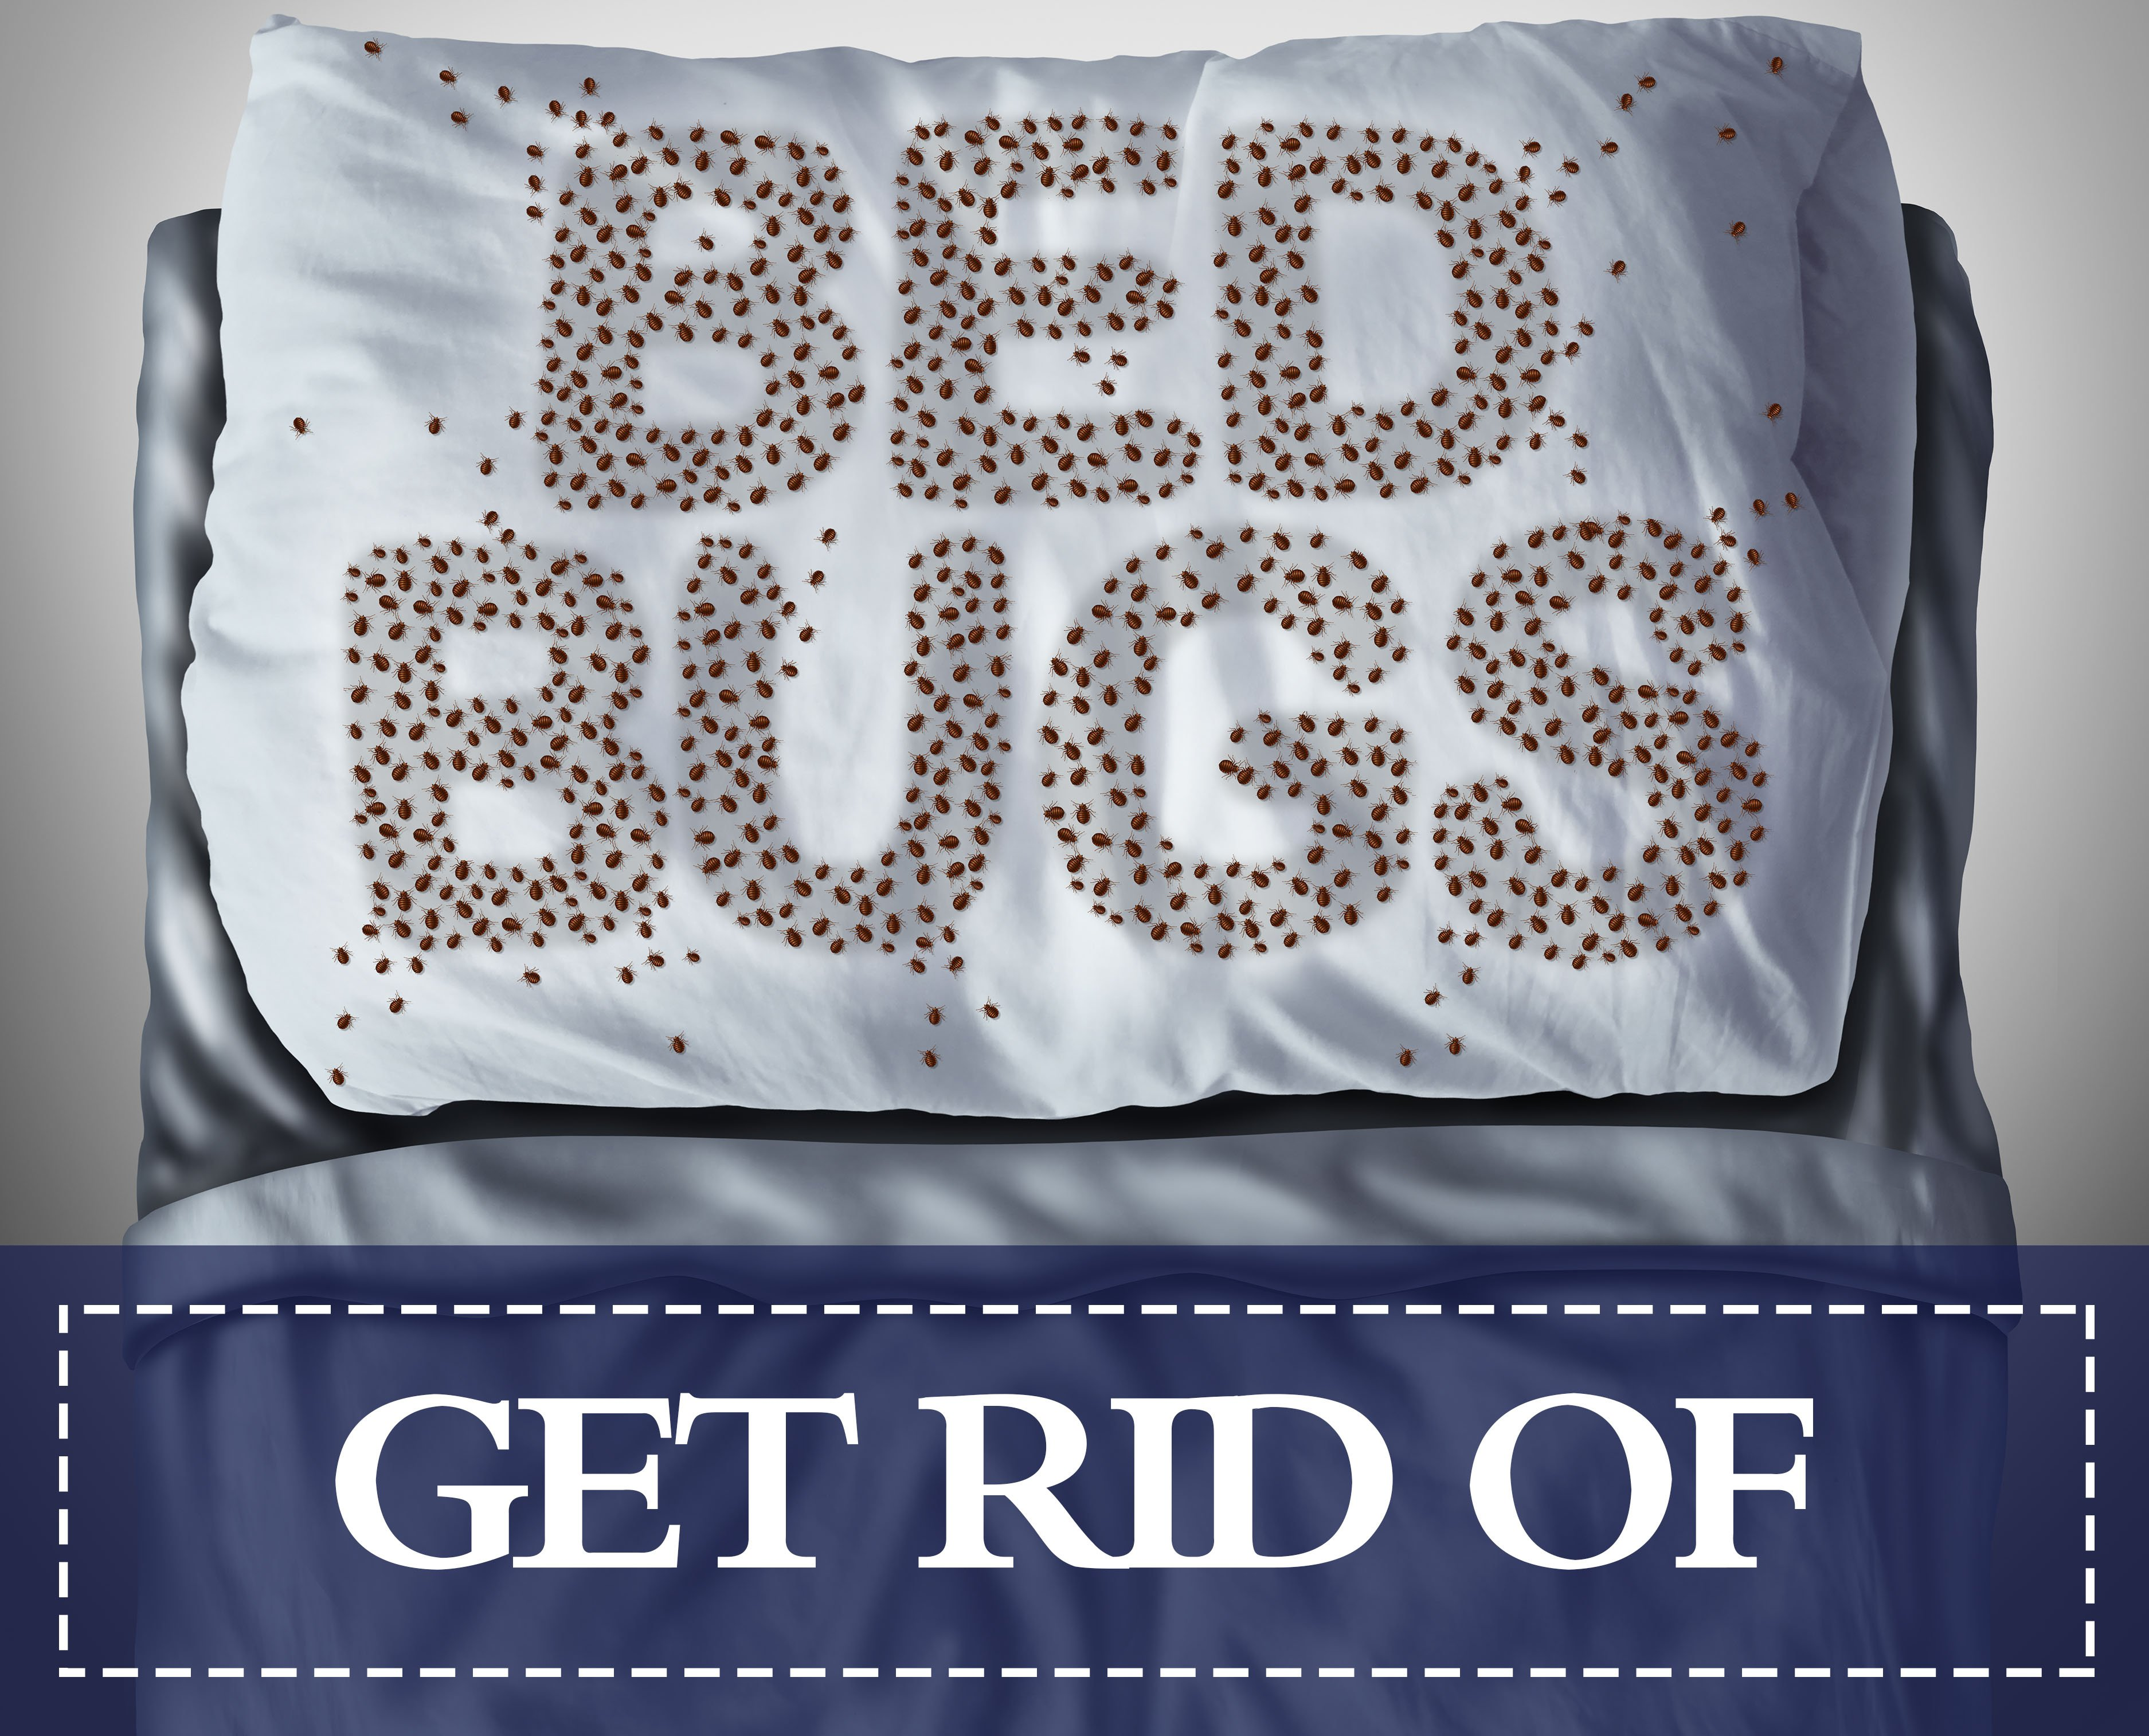 How to Get Rid of Bed Bugs Completely (13 Proven Methods